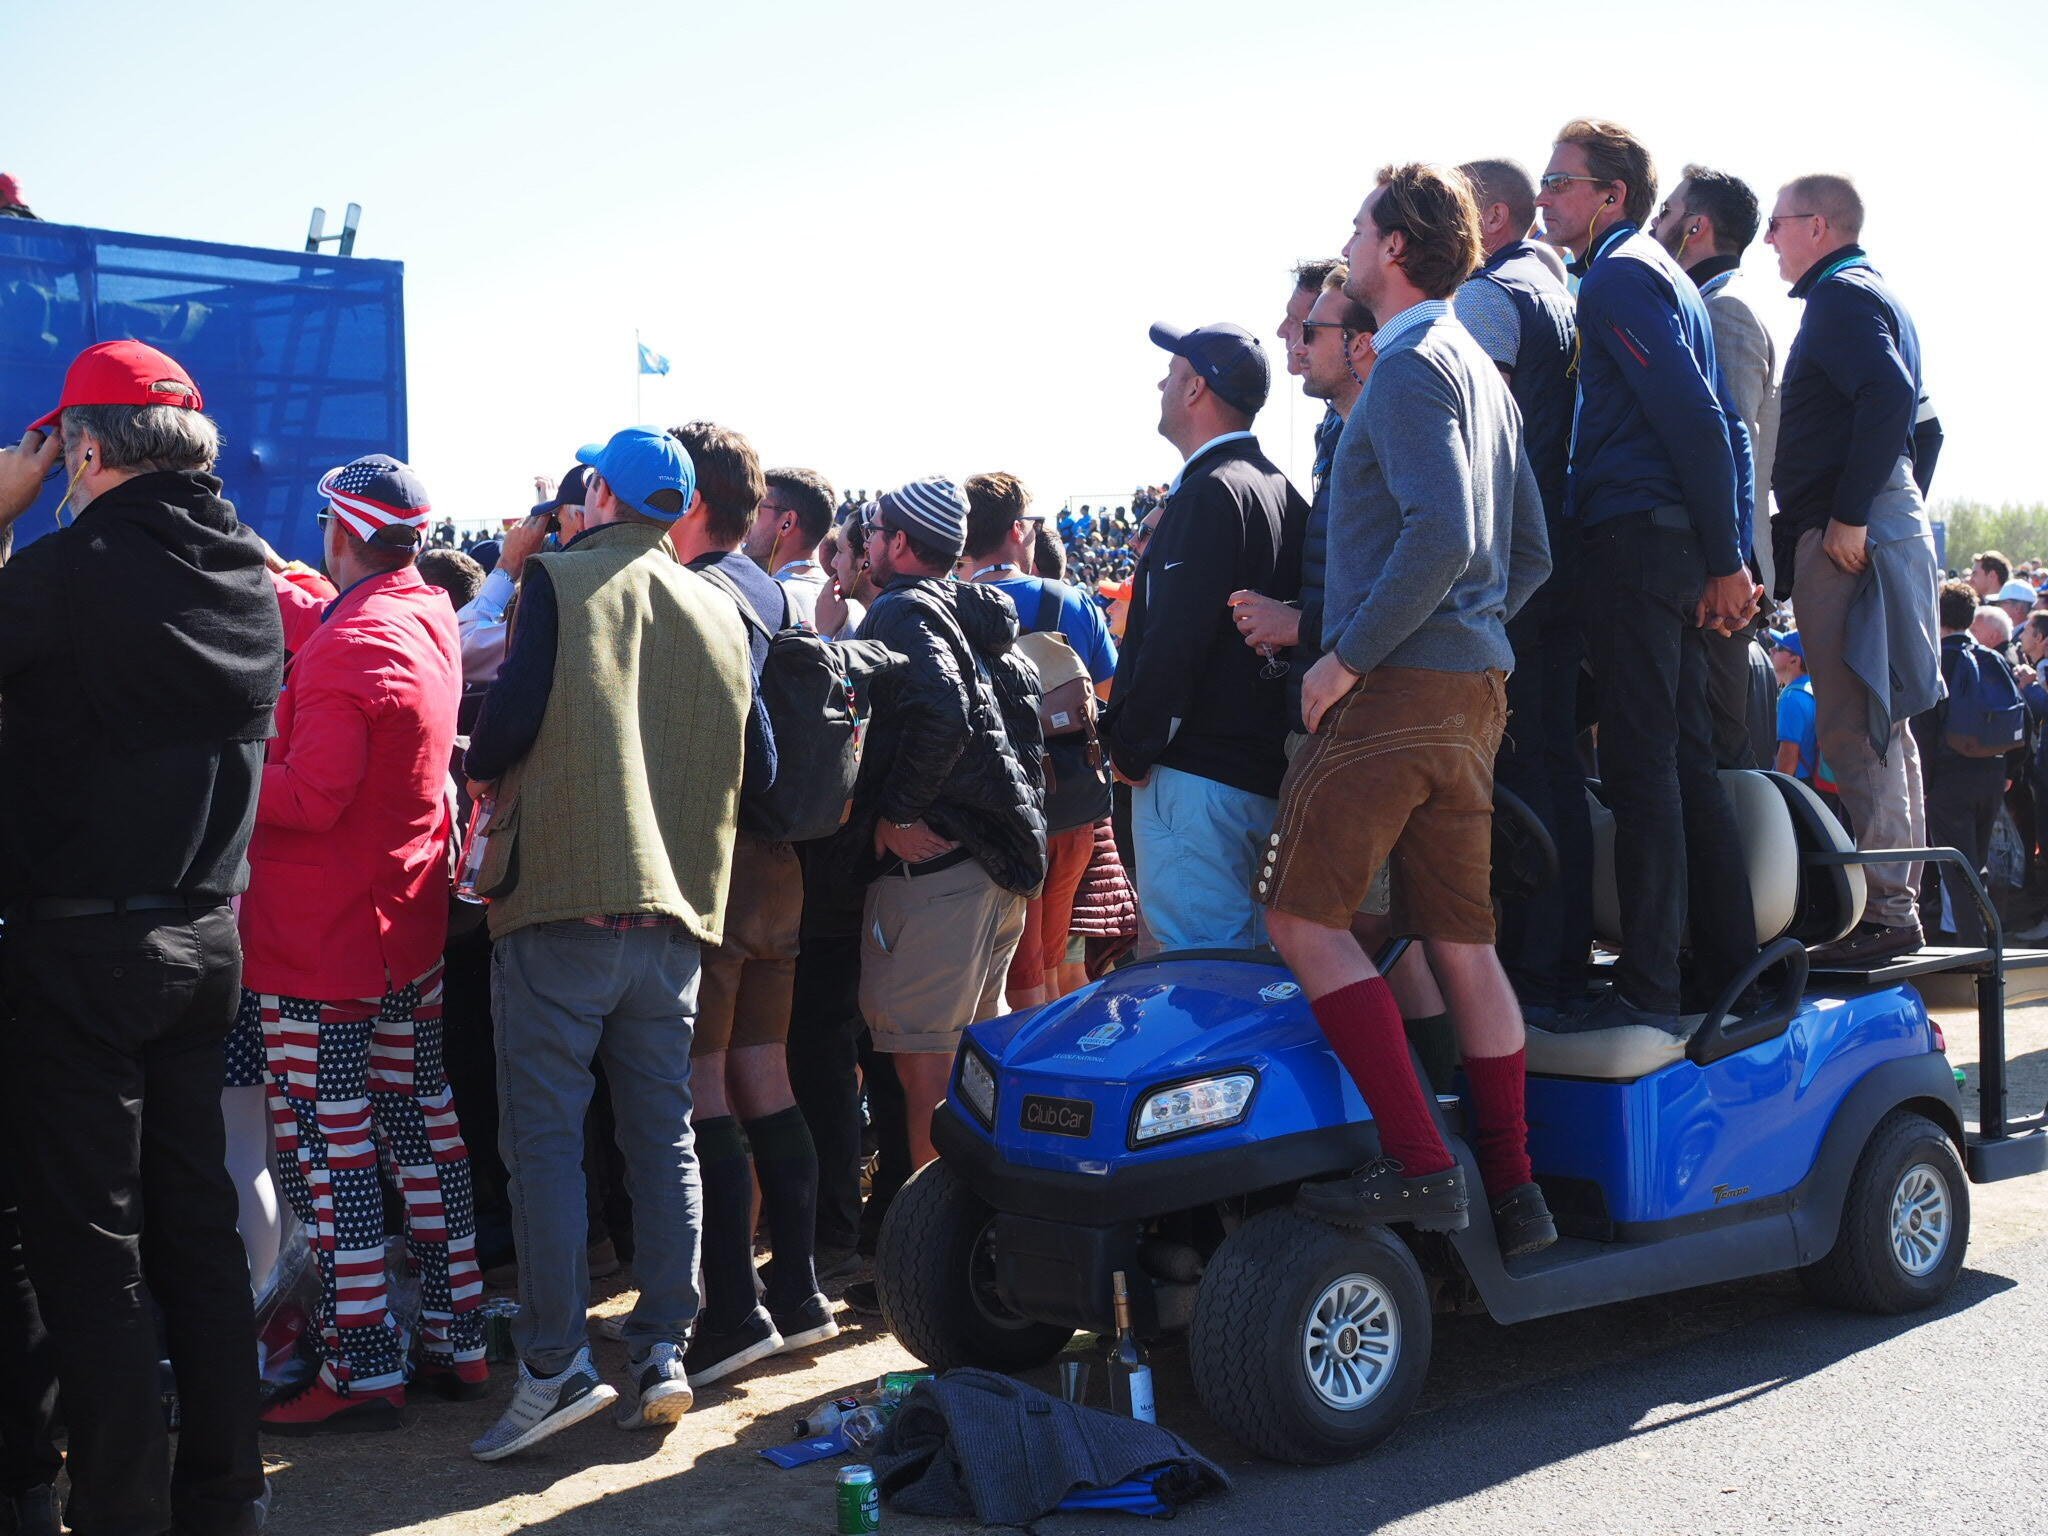 Spectators at this year's Ryder Cup